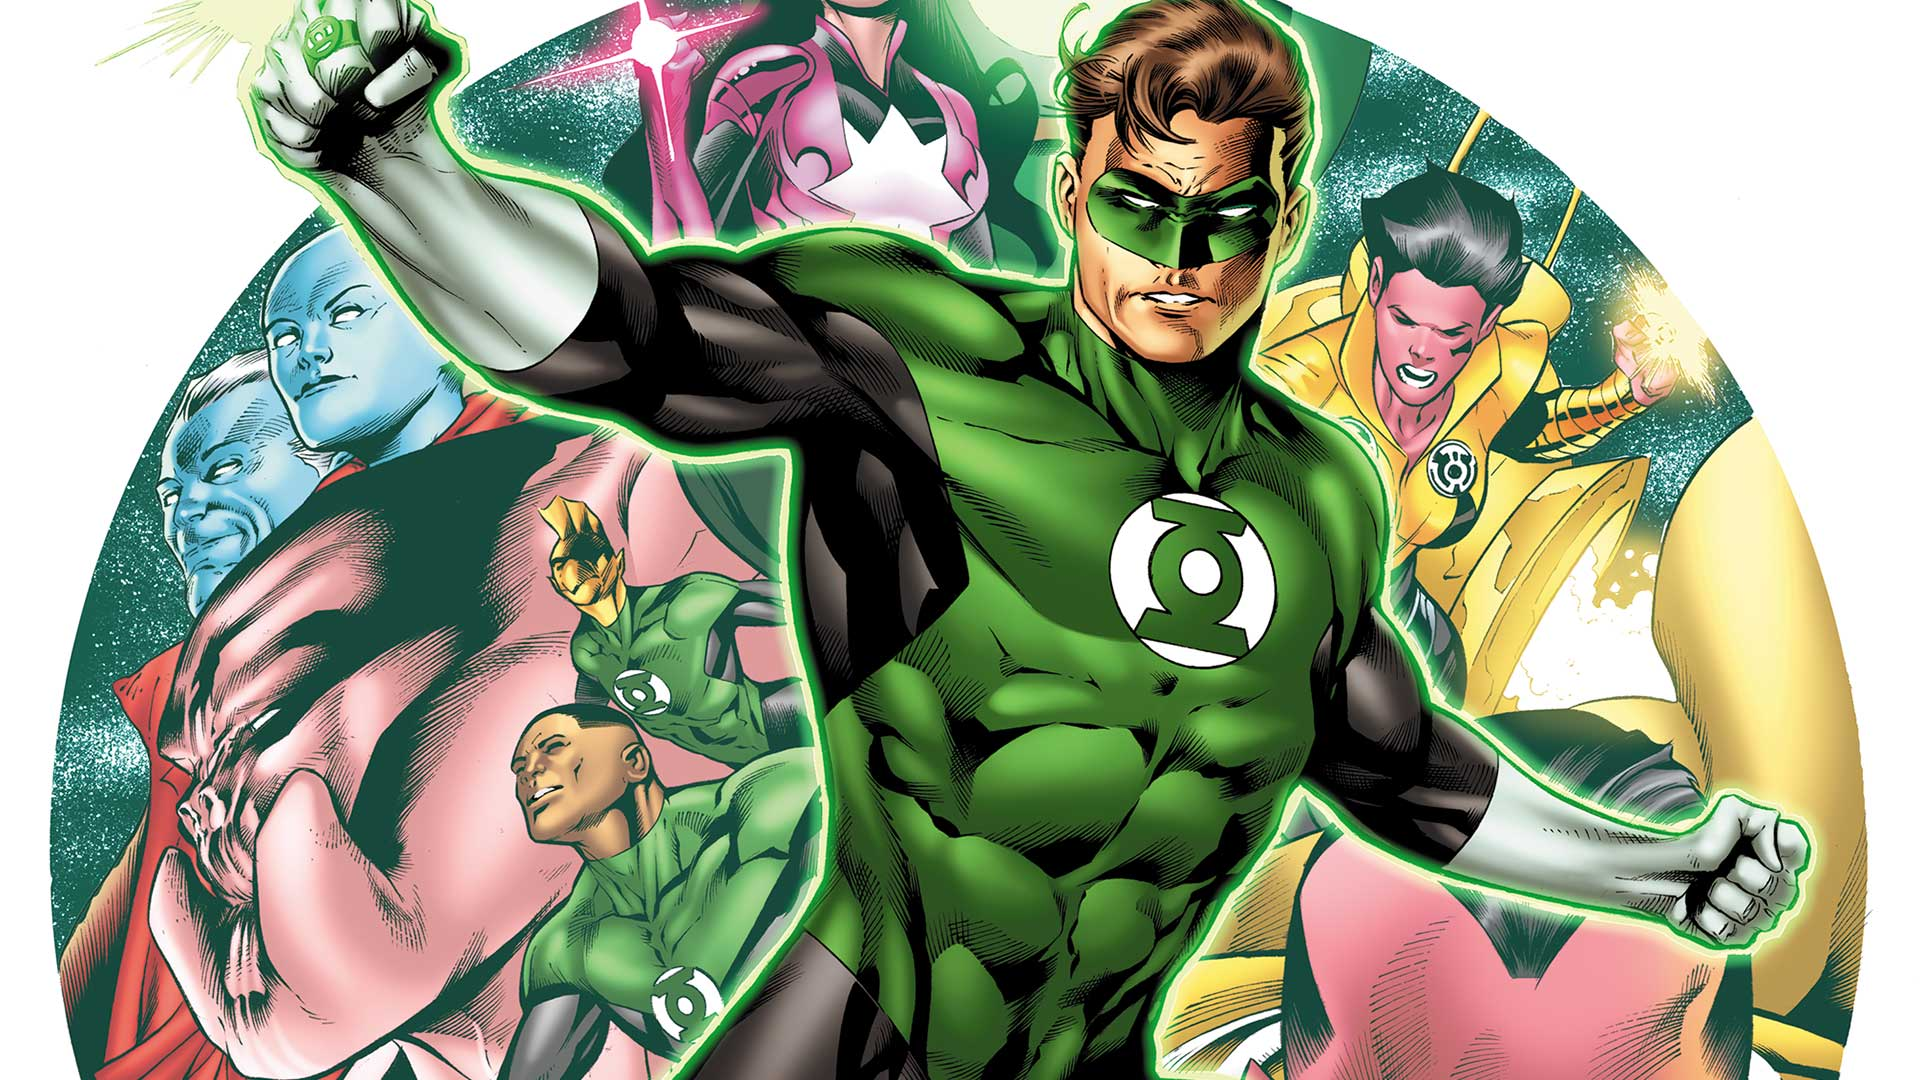 Keeping It Green Robert Venditti Reenlists For Hal Jordan And The Lantern Corps